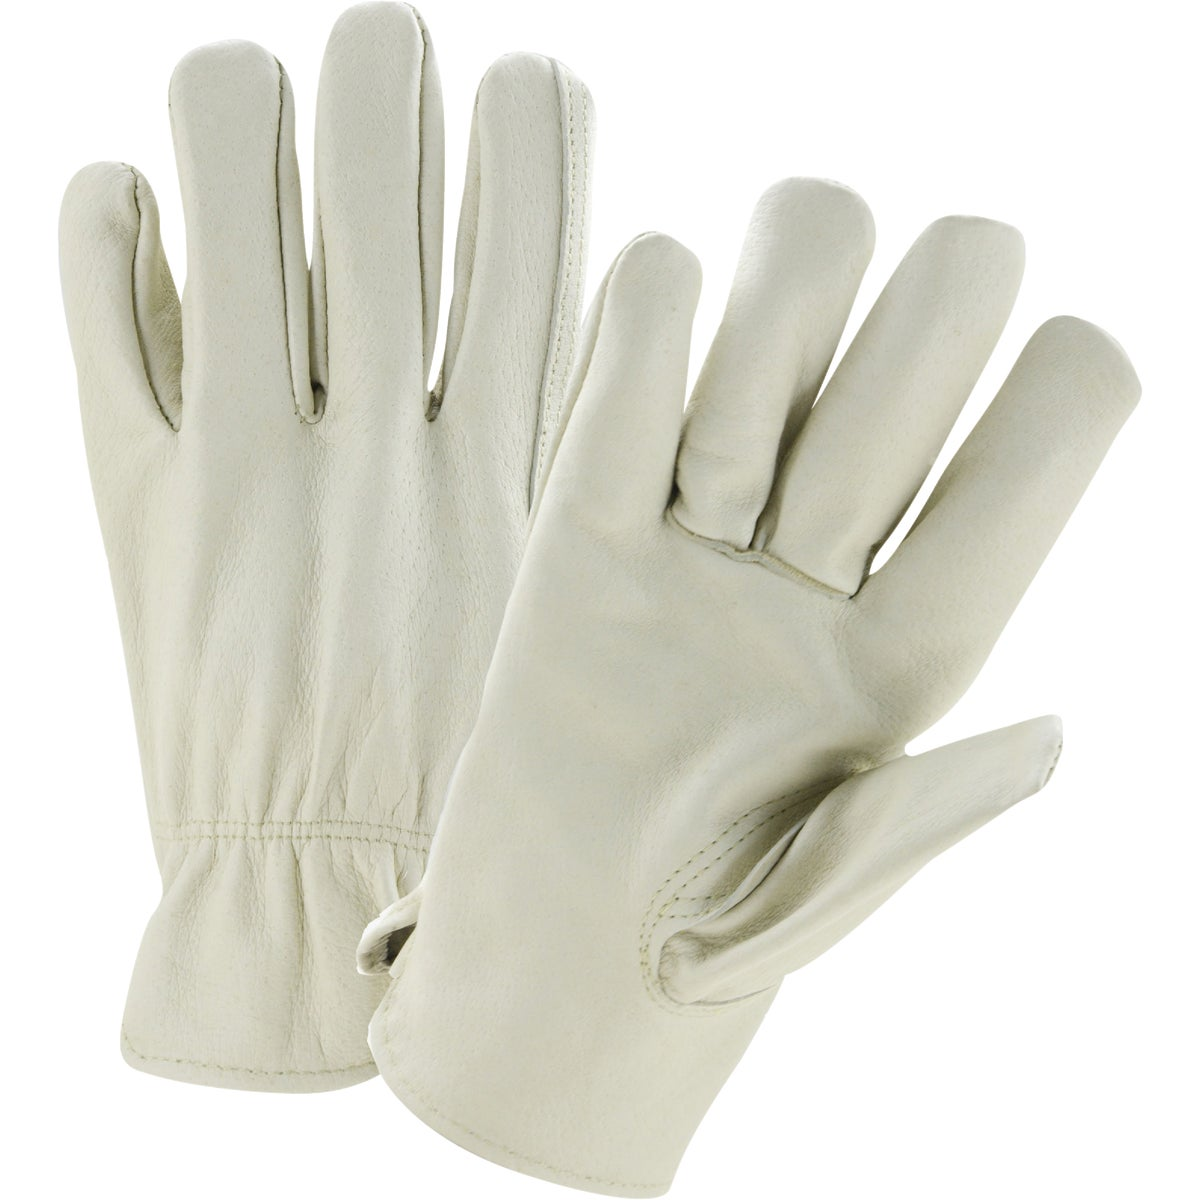 LRG GRAIN PIGSKIN GLOVE - 1133L by Wells Lamont